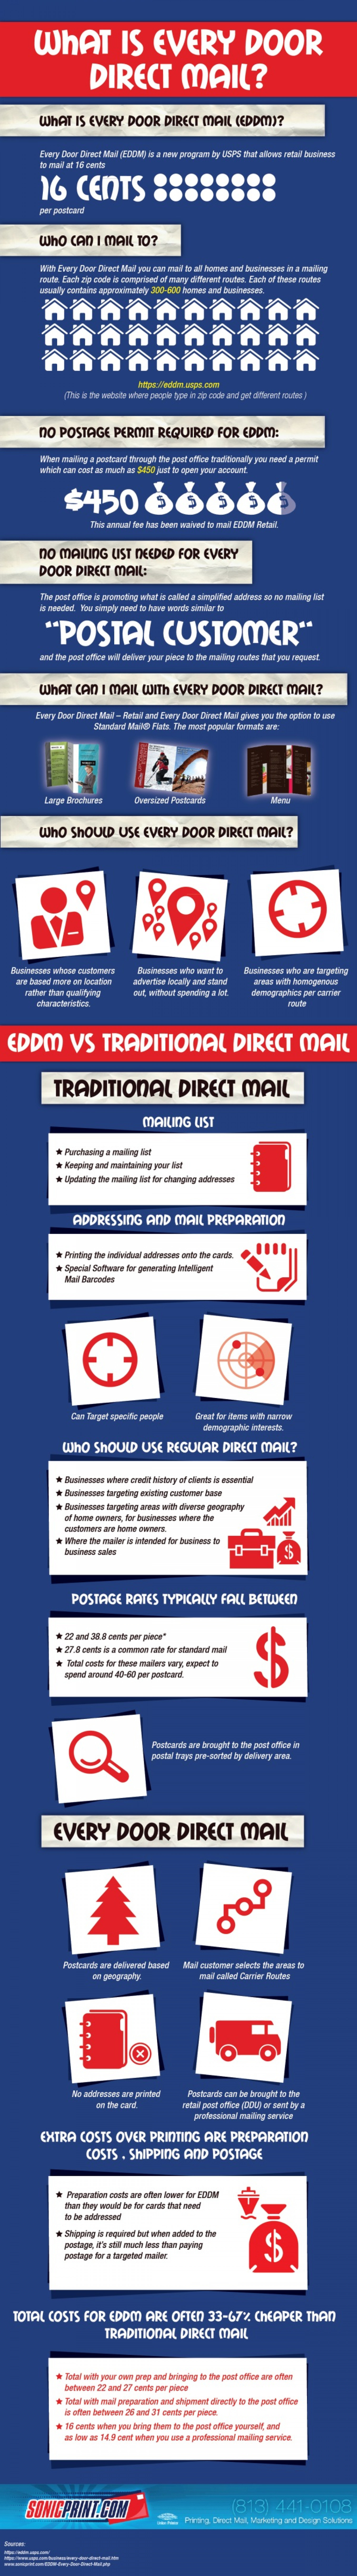 What Exactly Is Every Door Direct Mail? Infographic